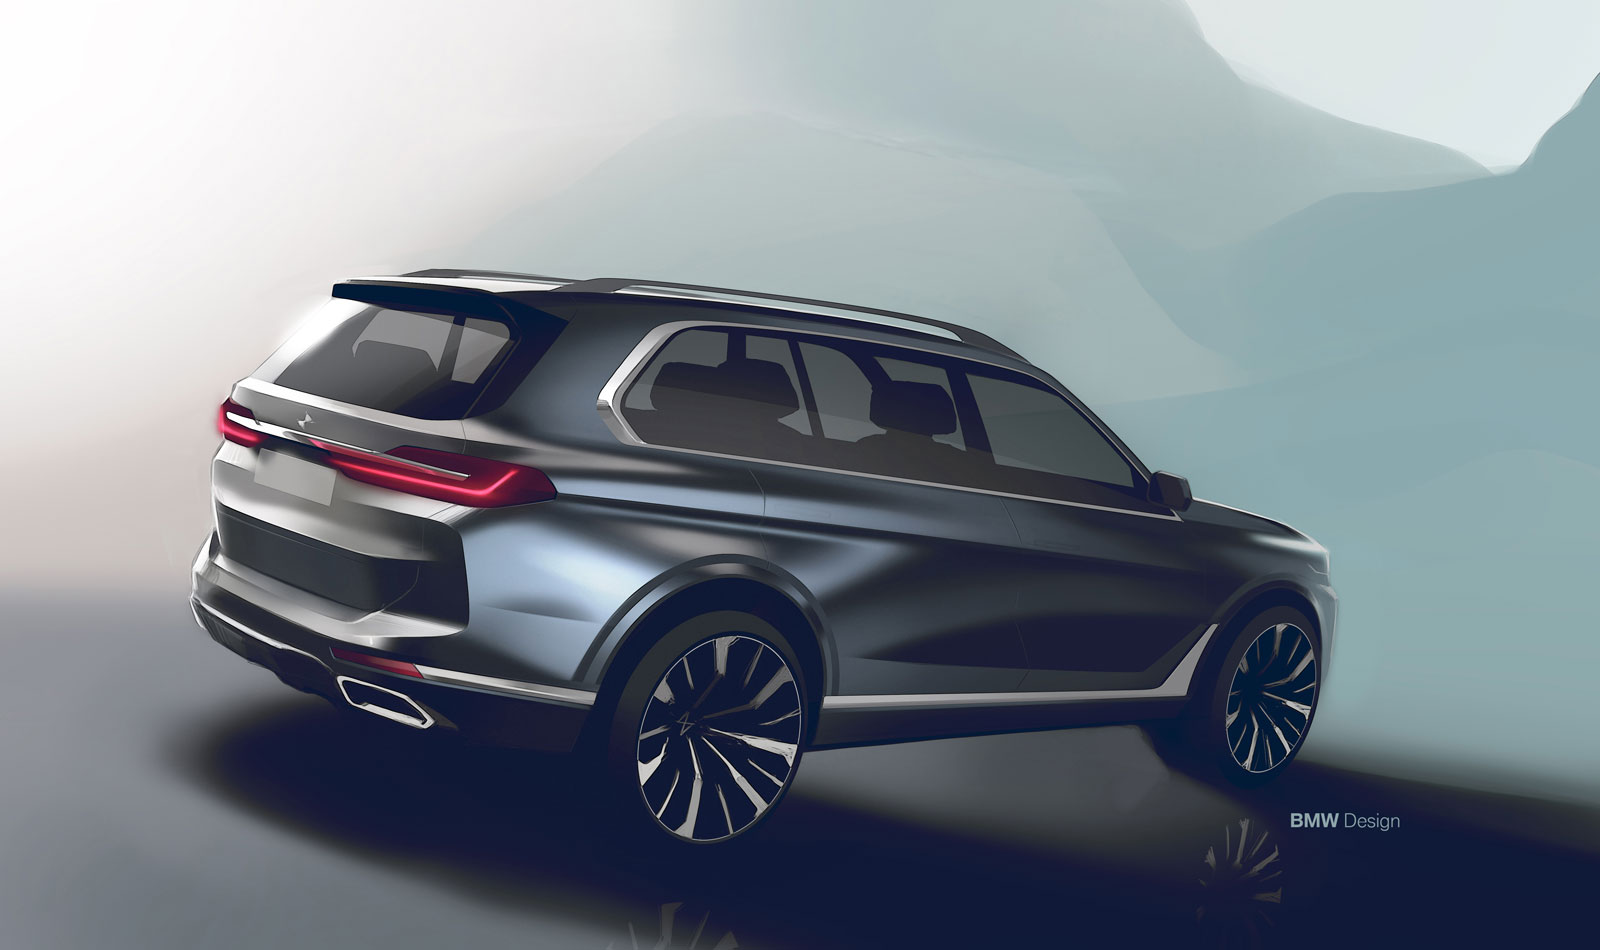 Bmw X7 Design Sketch Render Car Body Design